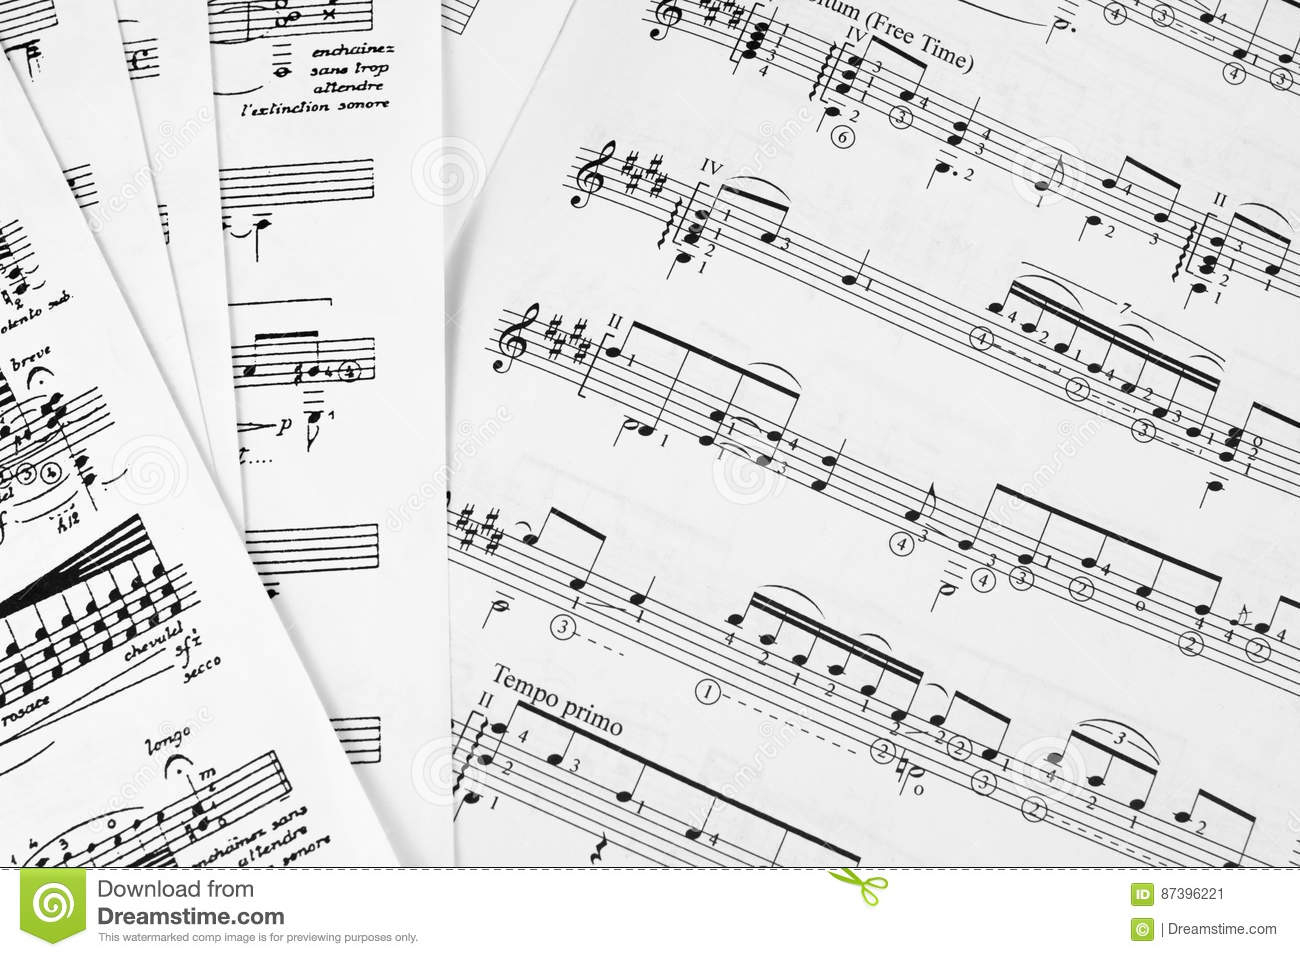 notes sheet music learning play guitar arpeggios piano saxophone harp violin cello bass oboe. Black Bedroom Furniture Sets. Home Design Ideas